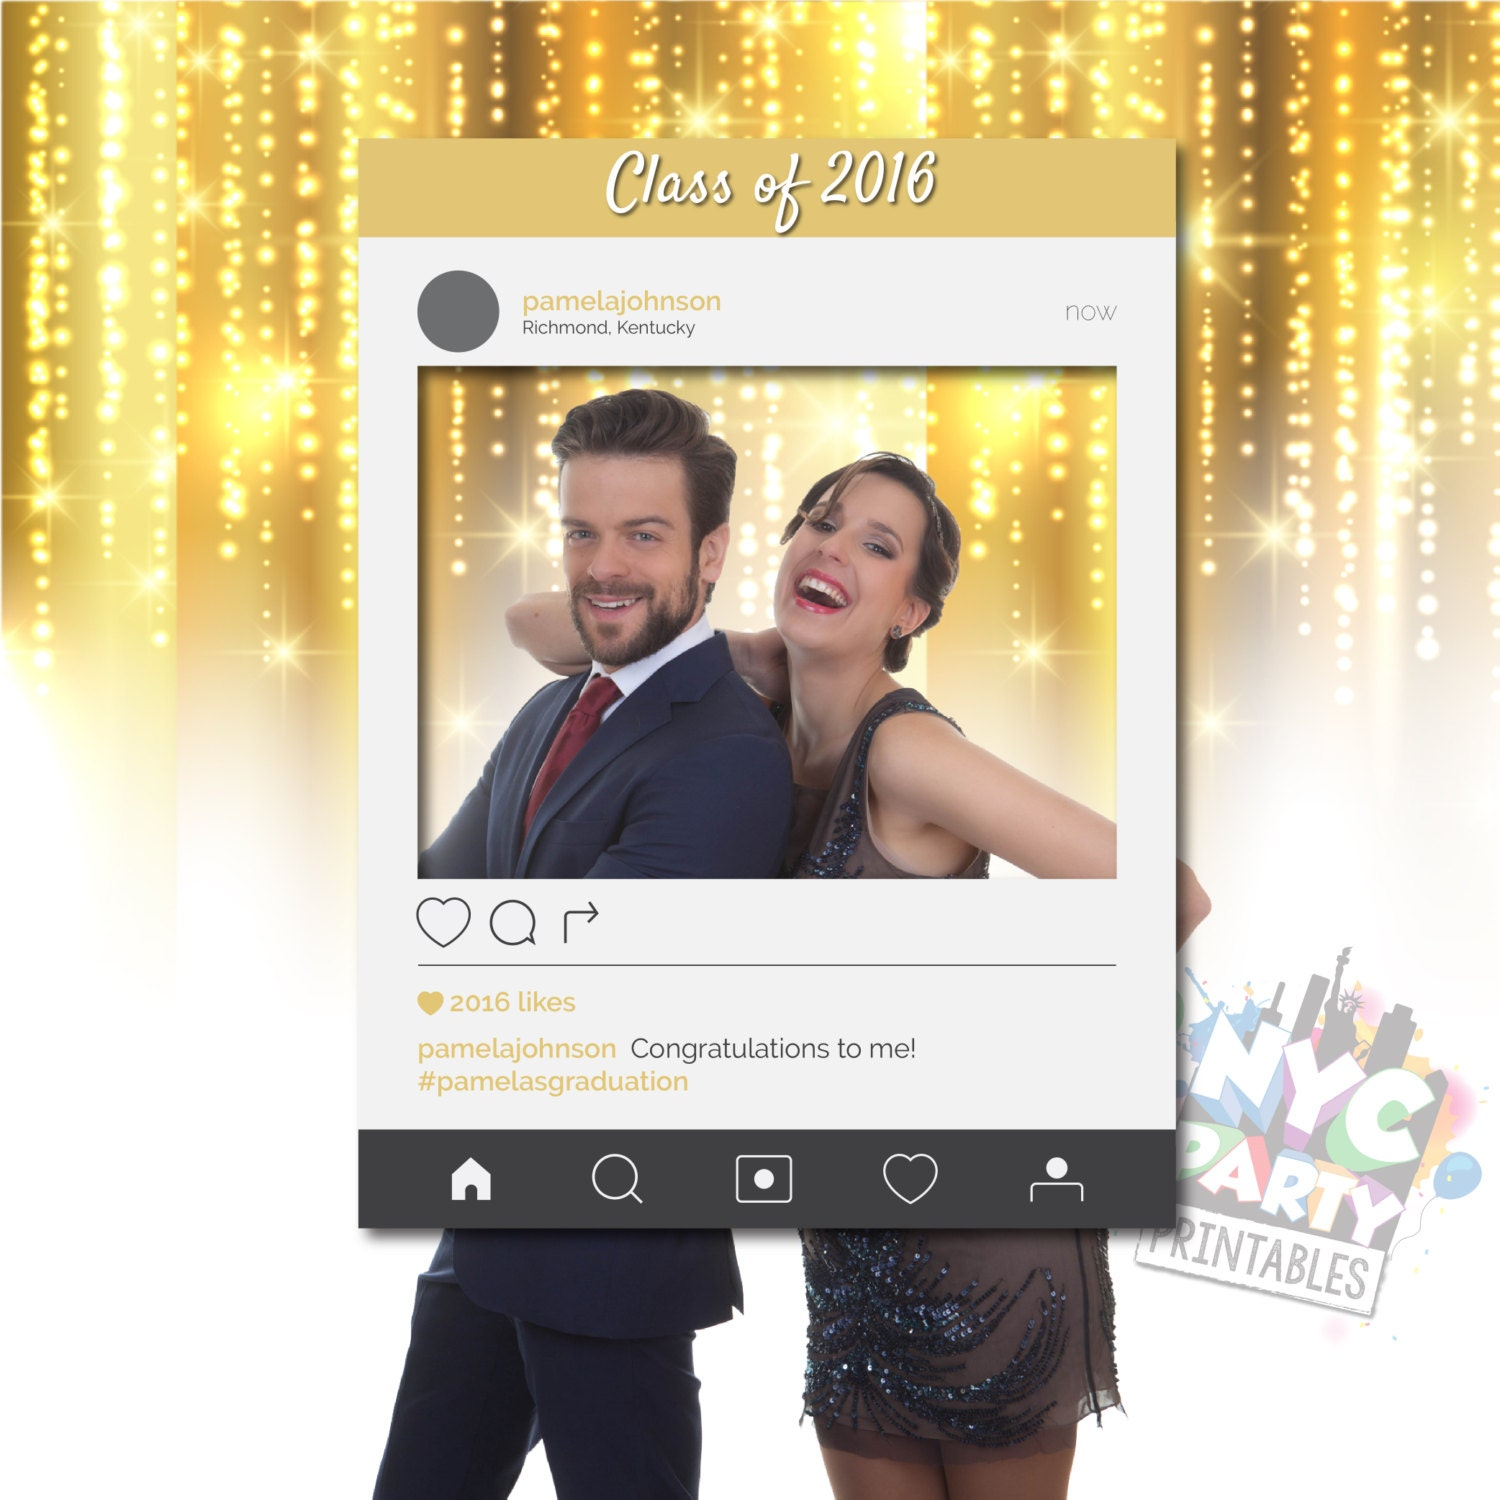 graduation photobooth instagram photo booth frame with profile picture ig photo booth frame photo booth frame printable photo booth